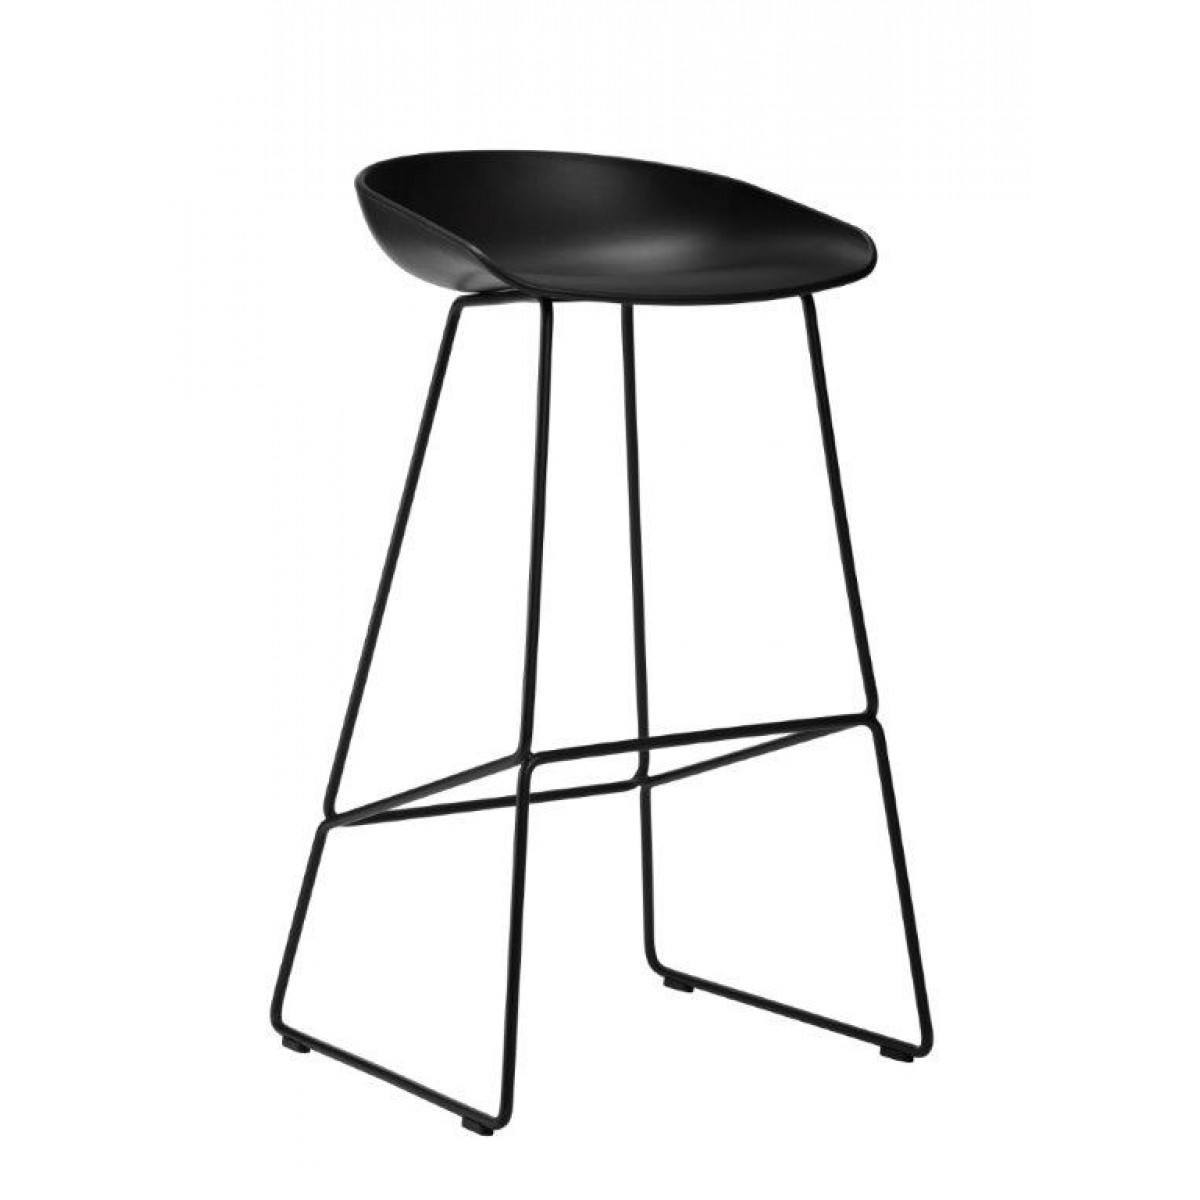 HAY ABOUT A STOOL AAS38 - Eclectic Cool  - 6